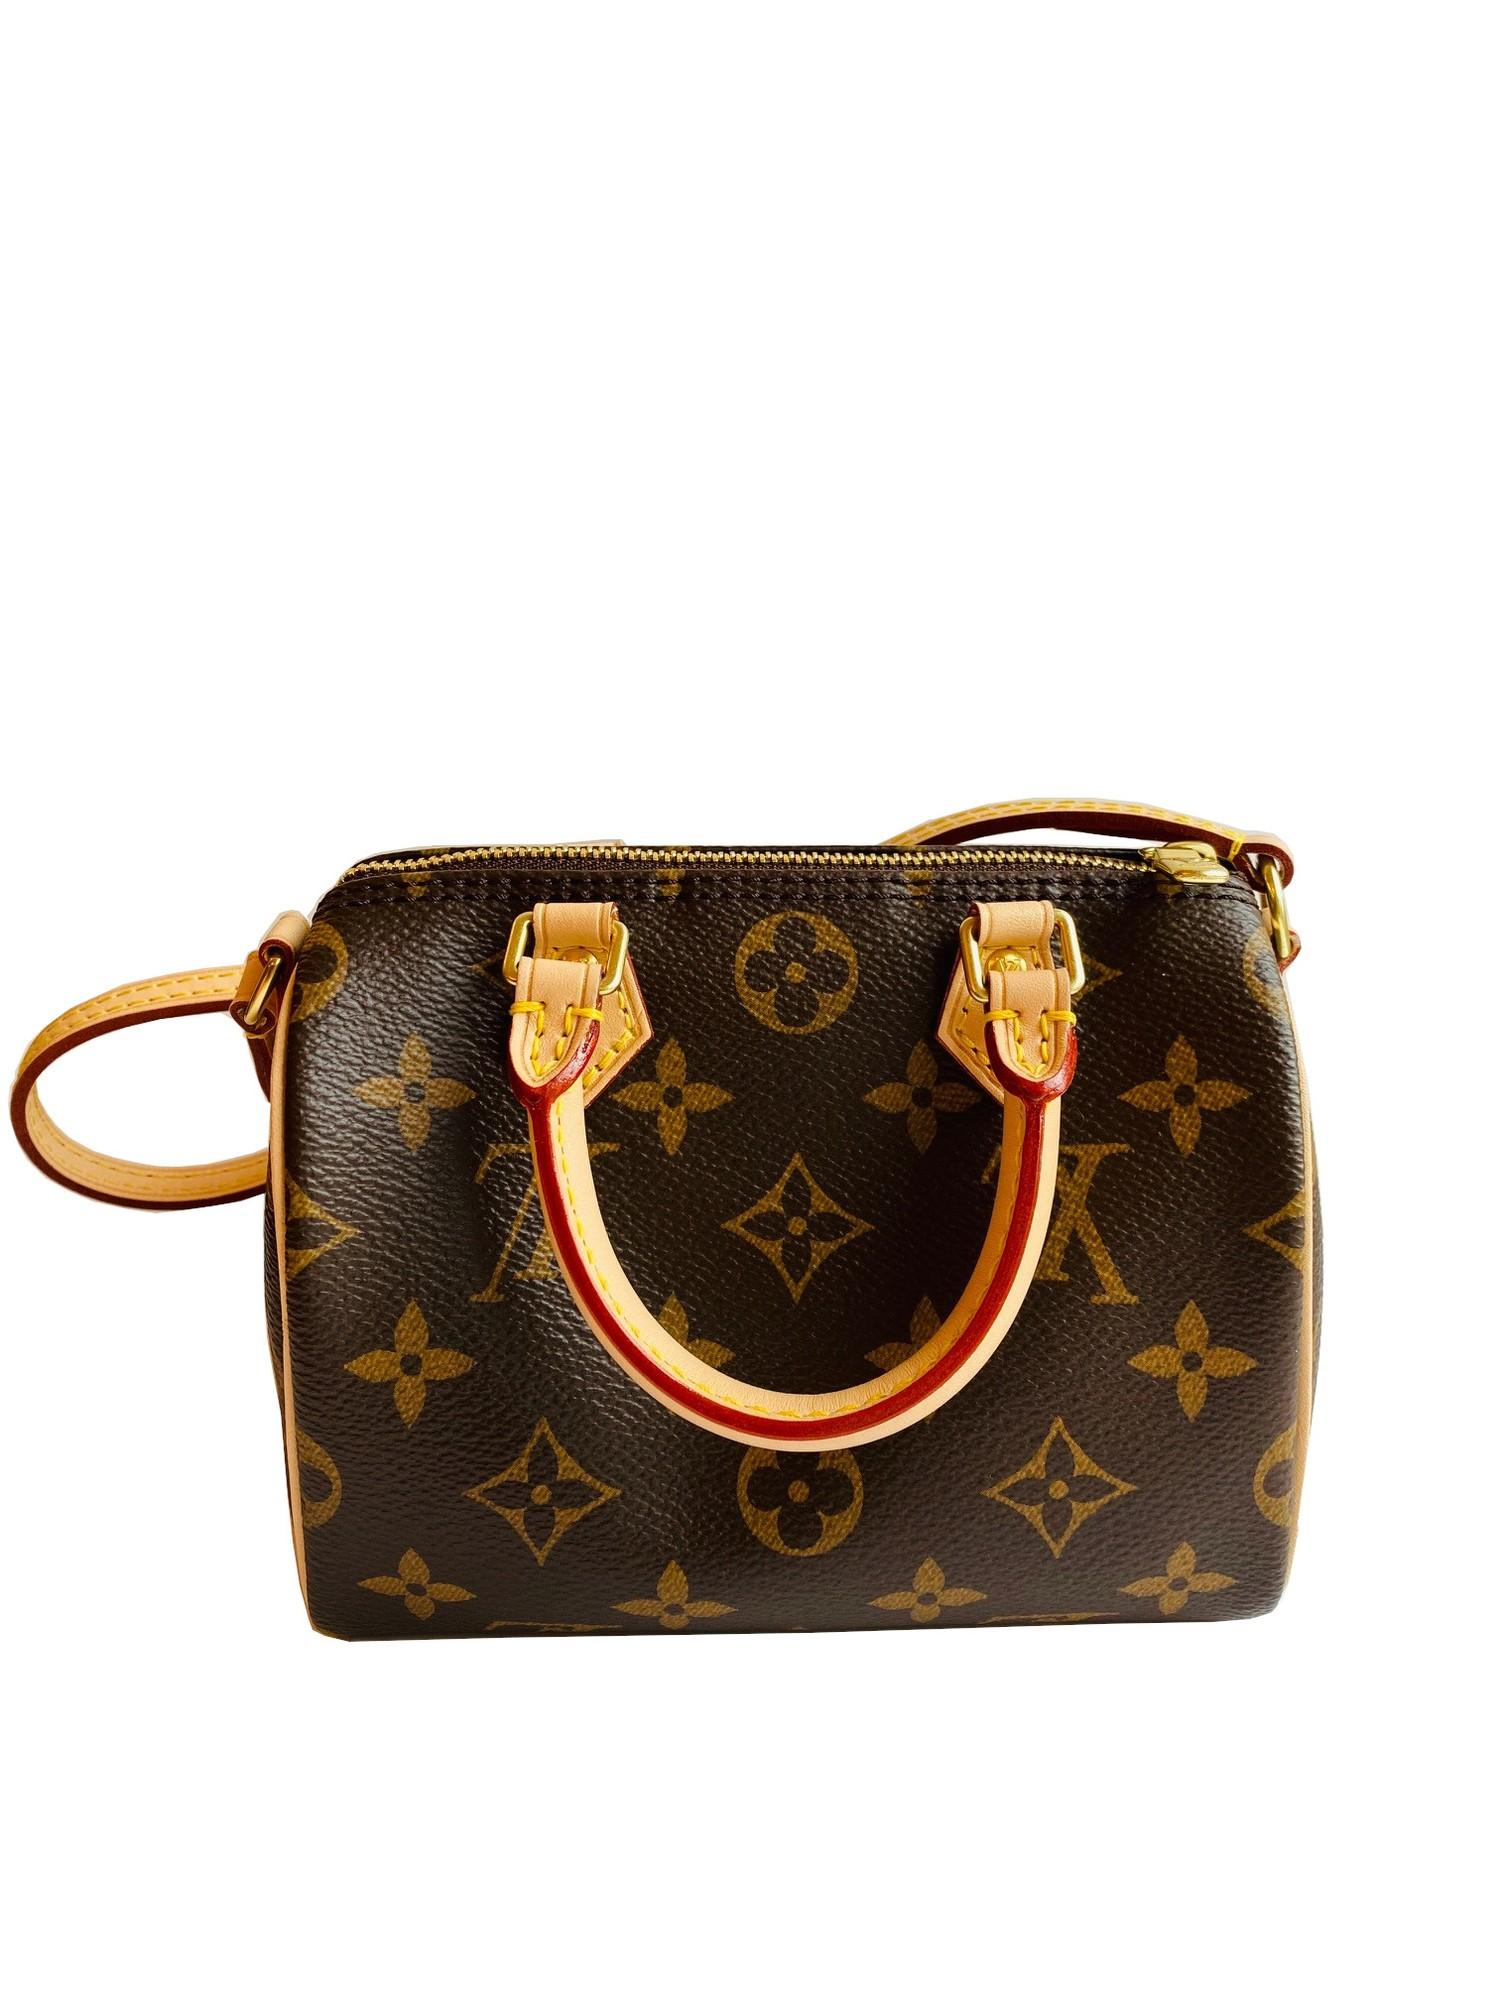 A Louis Vuitton Nano Speedy Monogram Canvas, as the name suggests the Nano Speedy is a miniature - Image 2 of 4